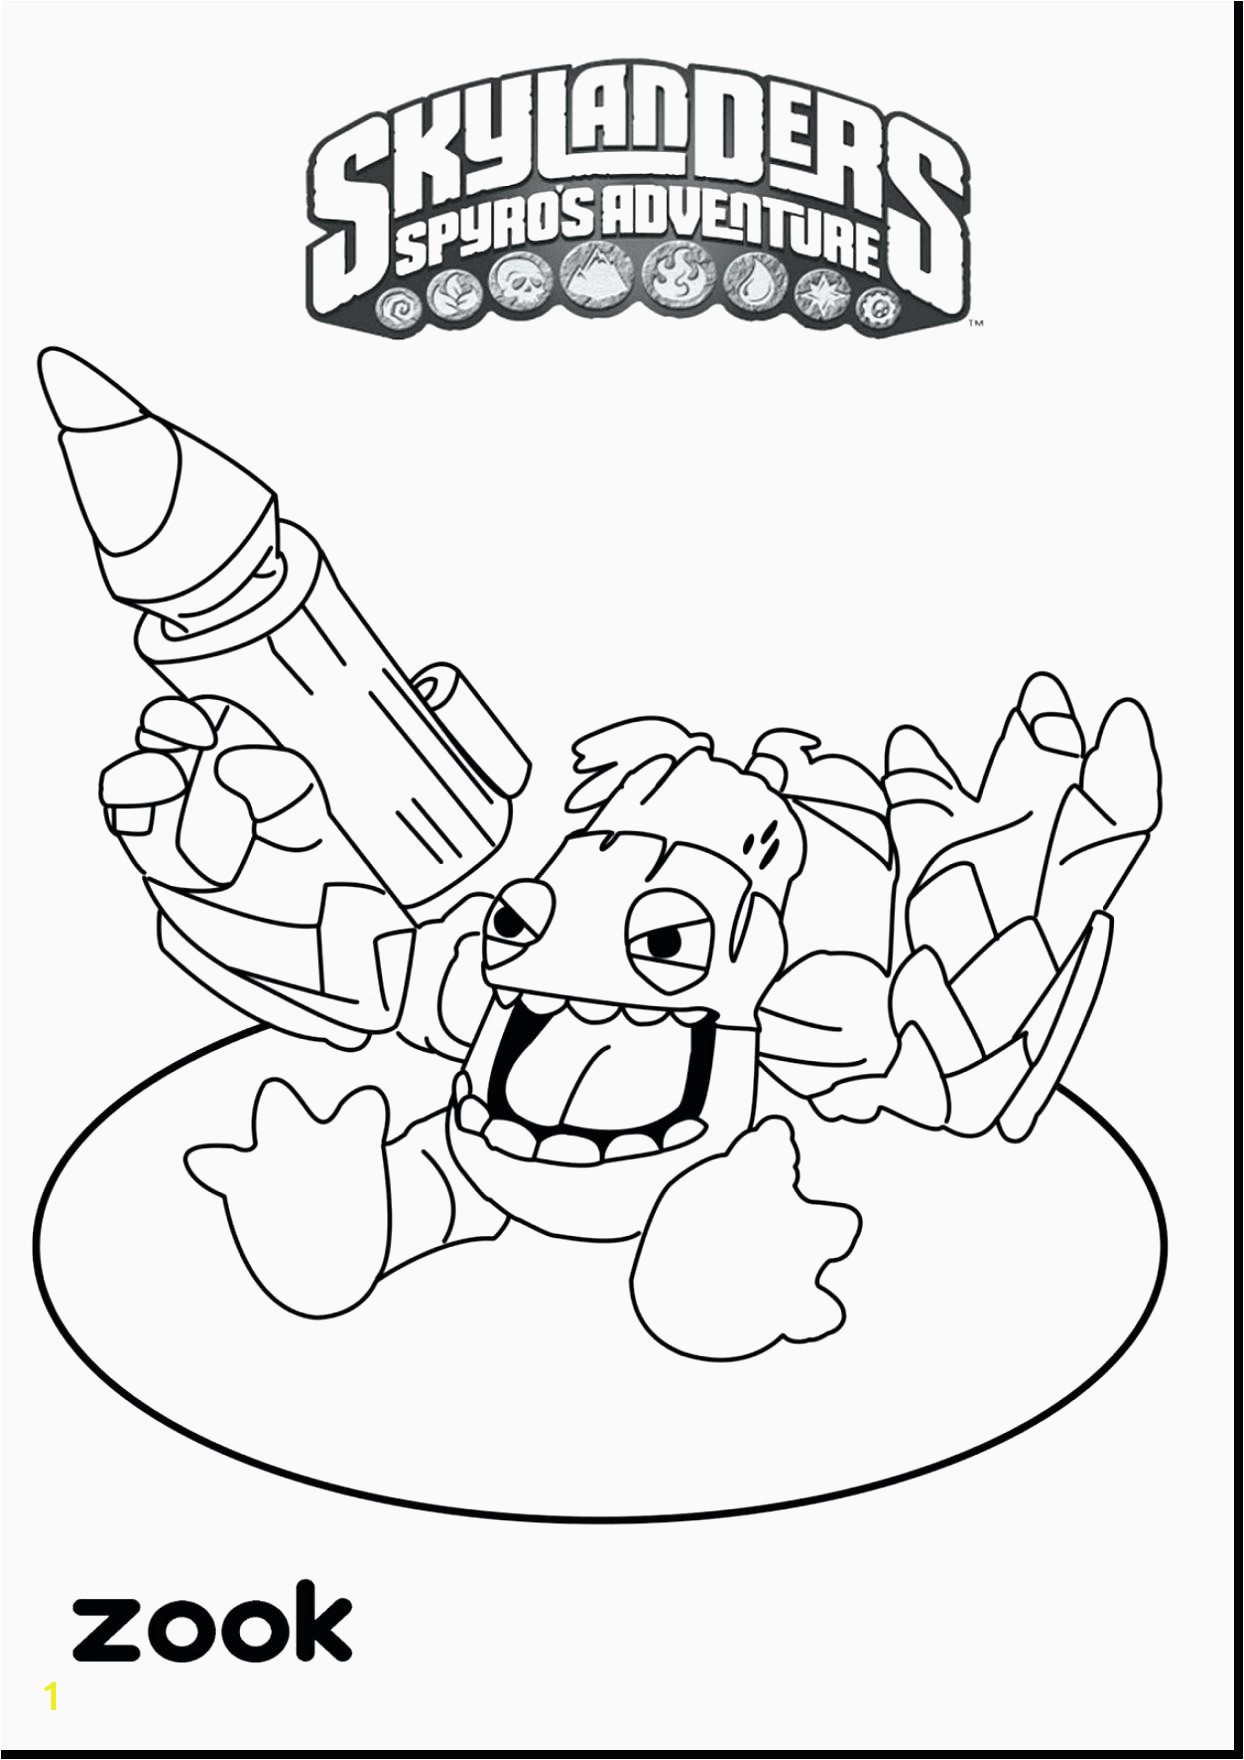 New astronauts coloring sheet Collection 19r Cool Coloring Page Inspirational Witch Coloring Pages New Crayola